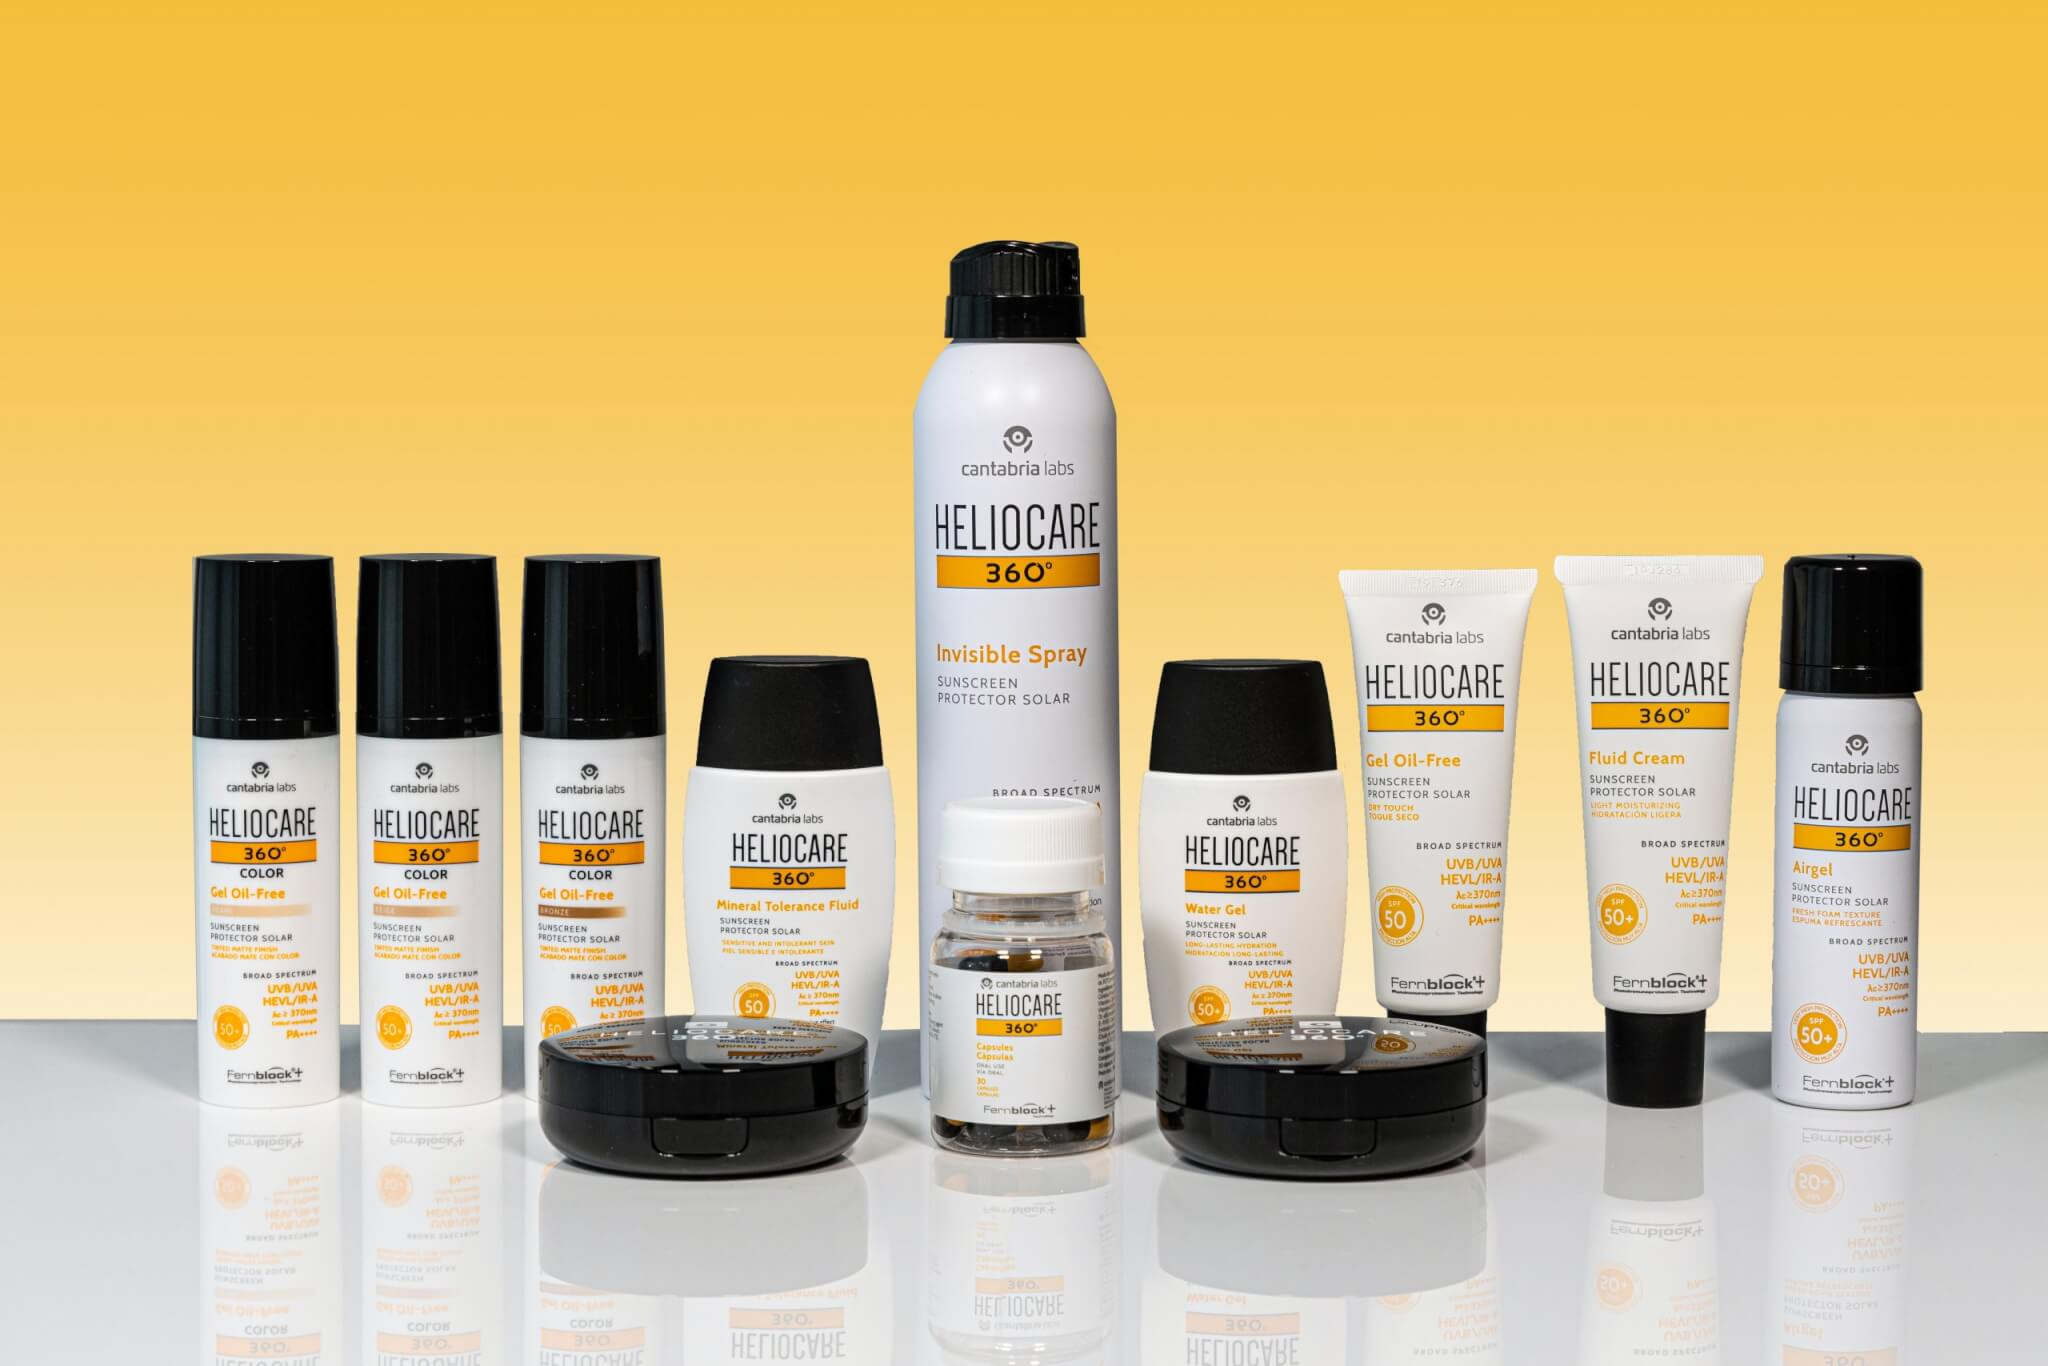 Save 10% on Heliocare with zen online